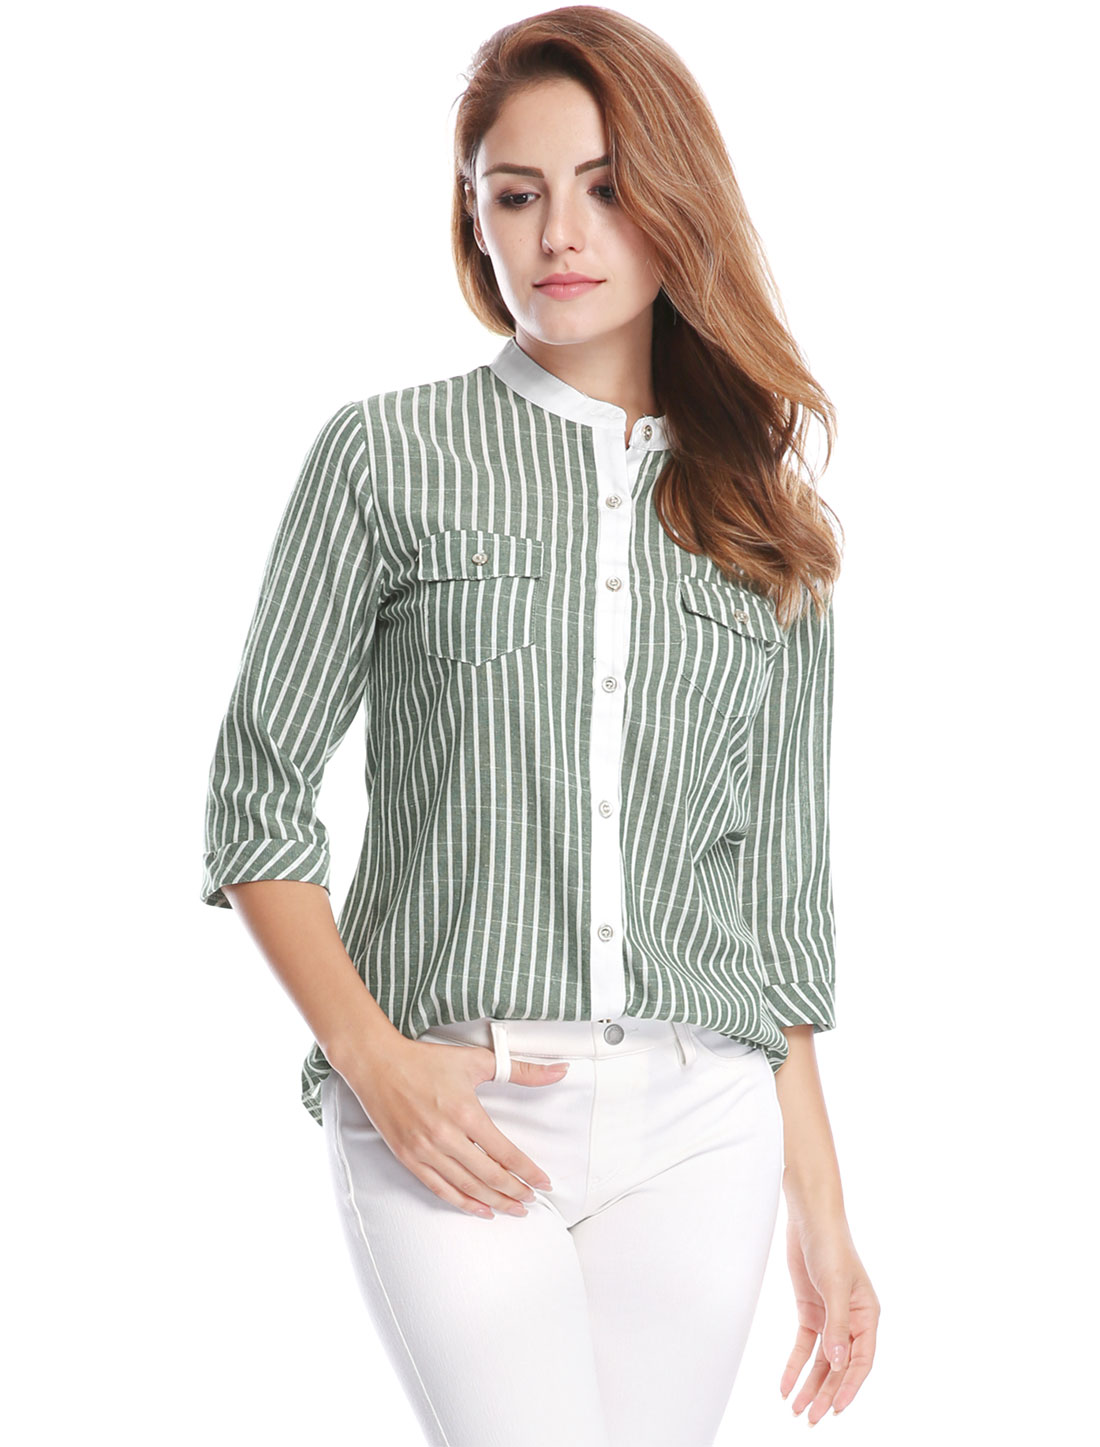 Woman Cuffed 3/4 Sleeves Stand Collar Buttoned Striped Shirt Green L